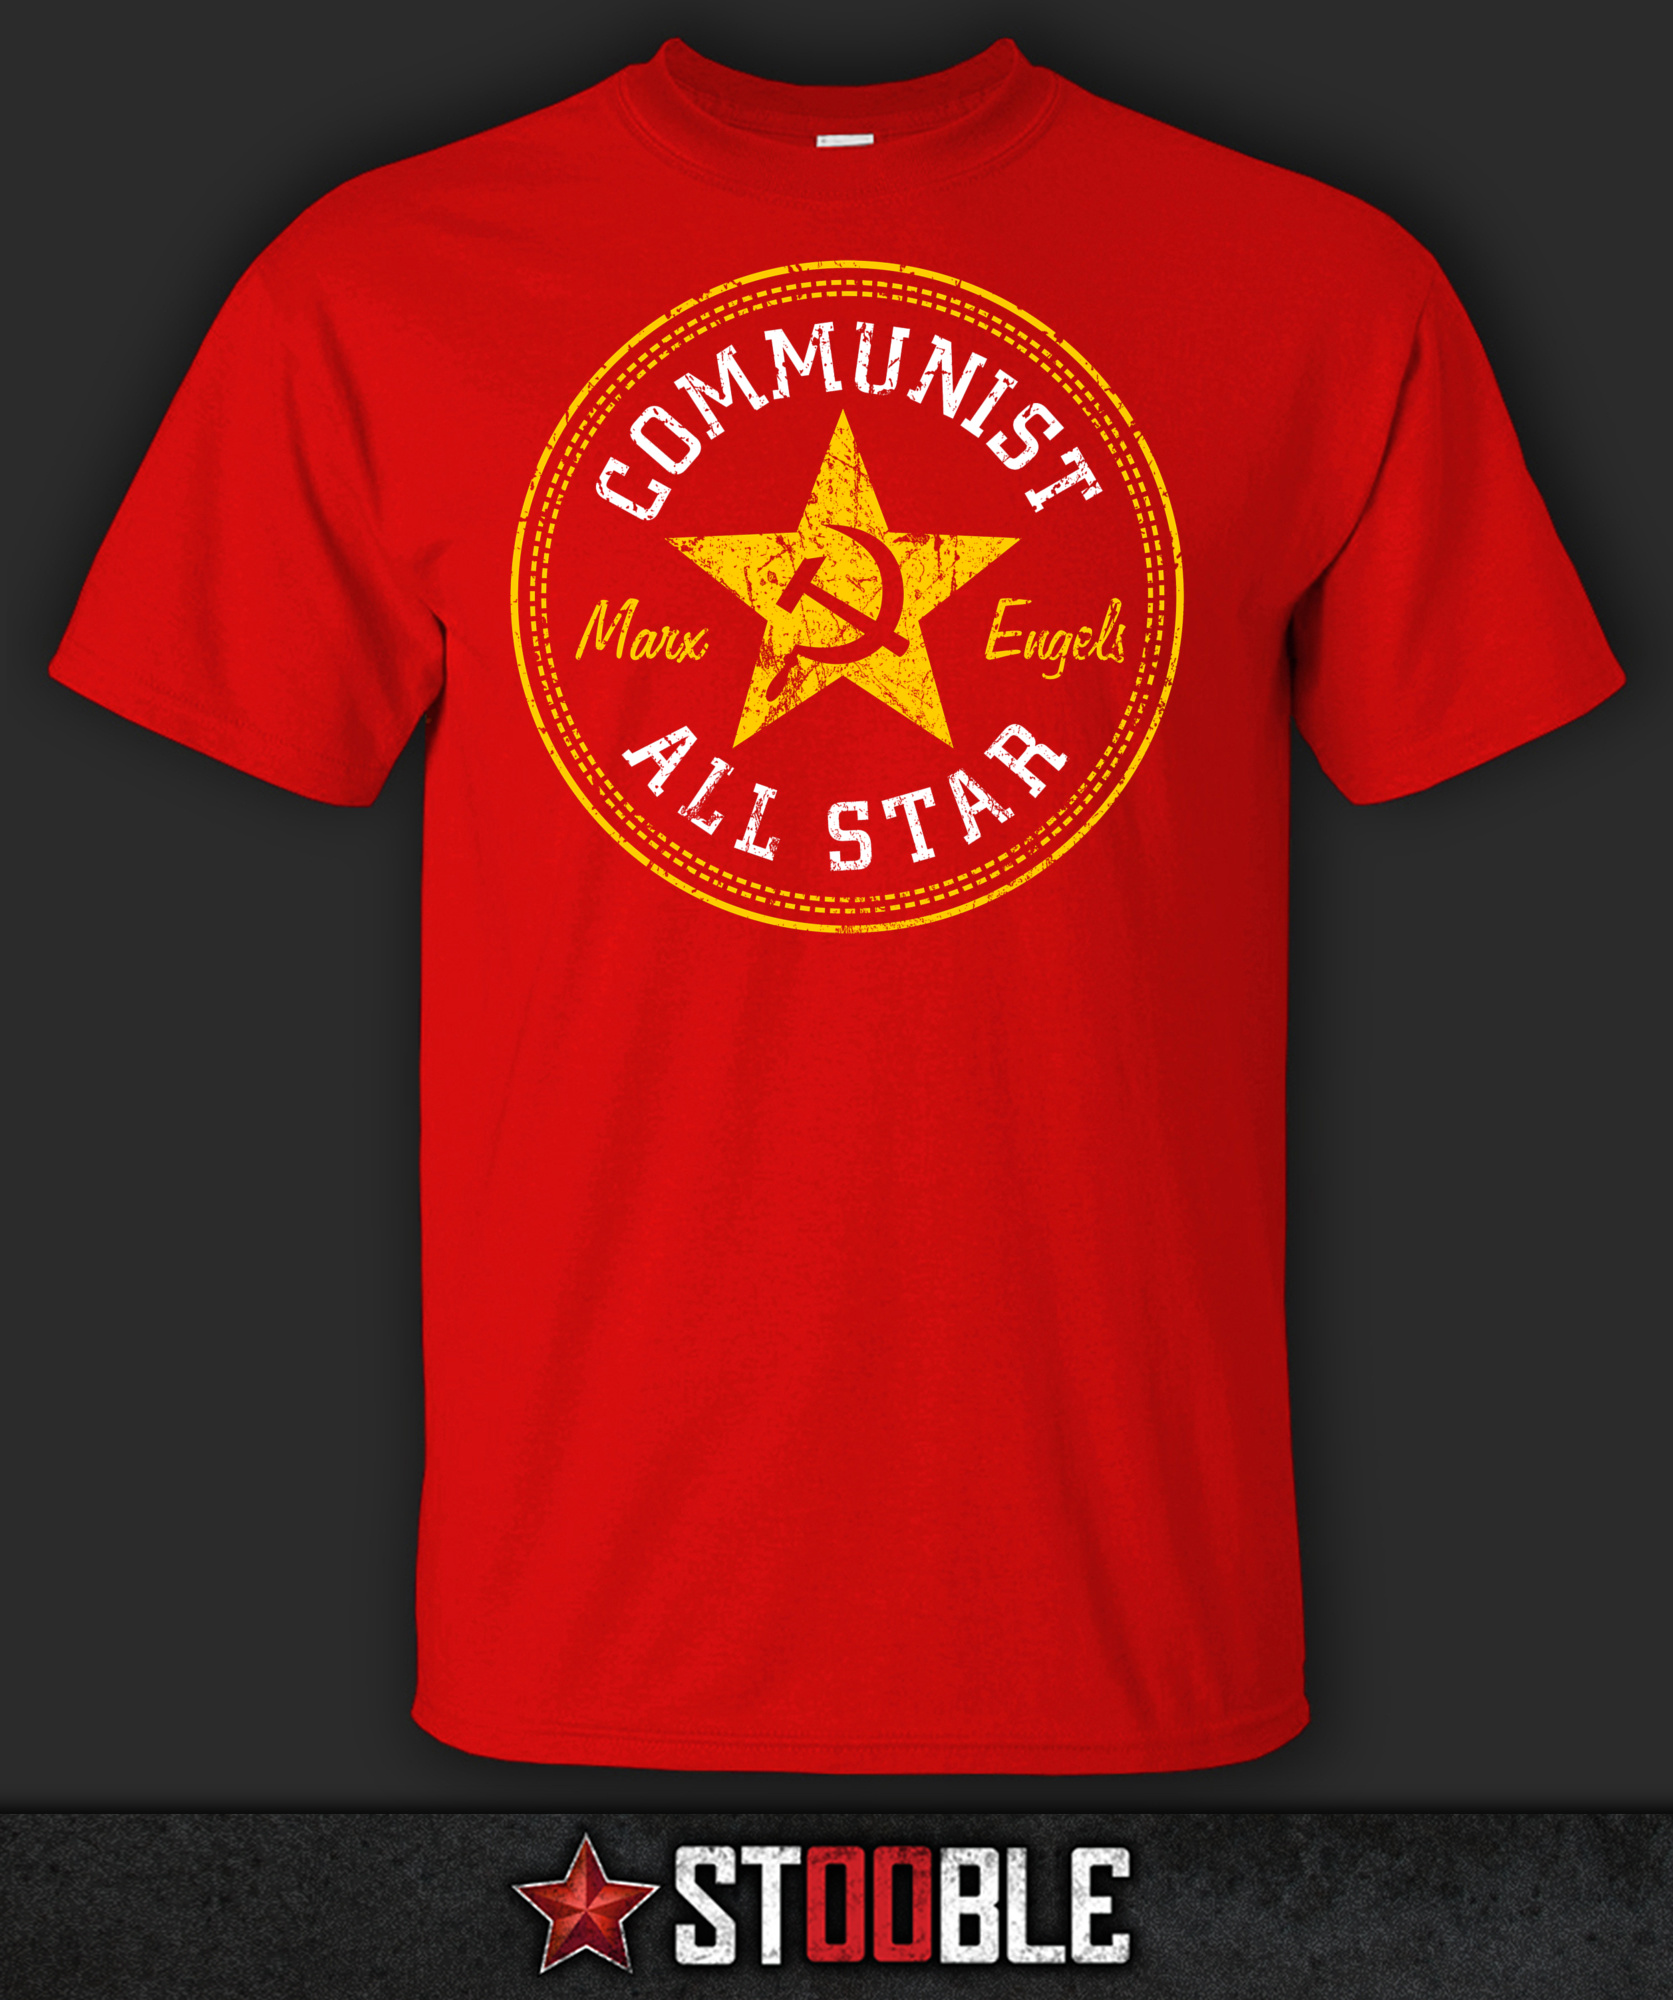 Communist t shirt new direct from manufacturer ebay for T shirt distributor manufacturers